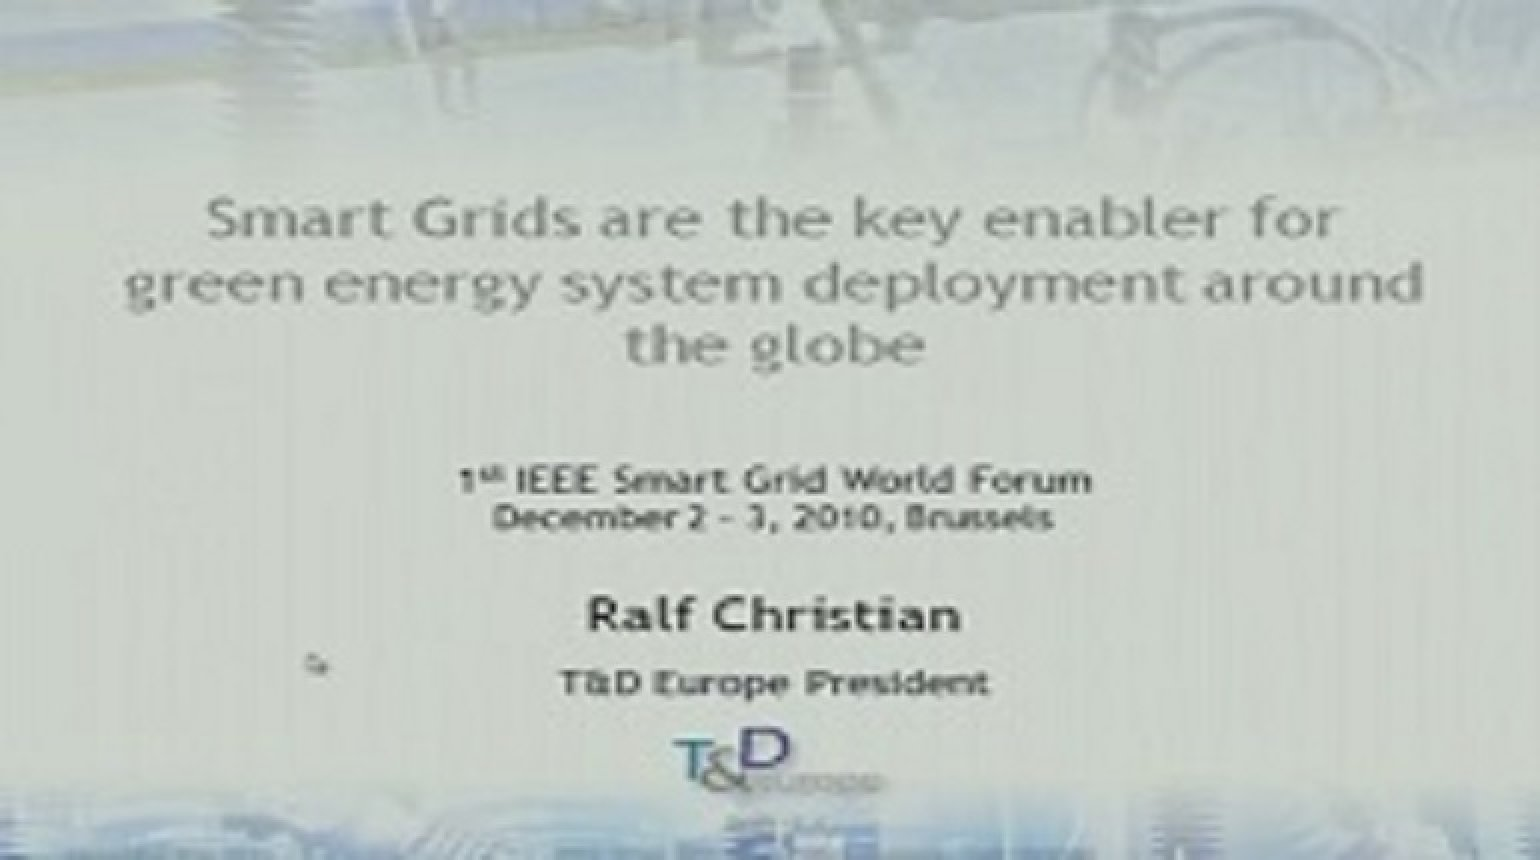 IEEE Smart Grid World Forum - Ralf Christian